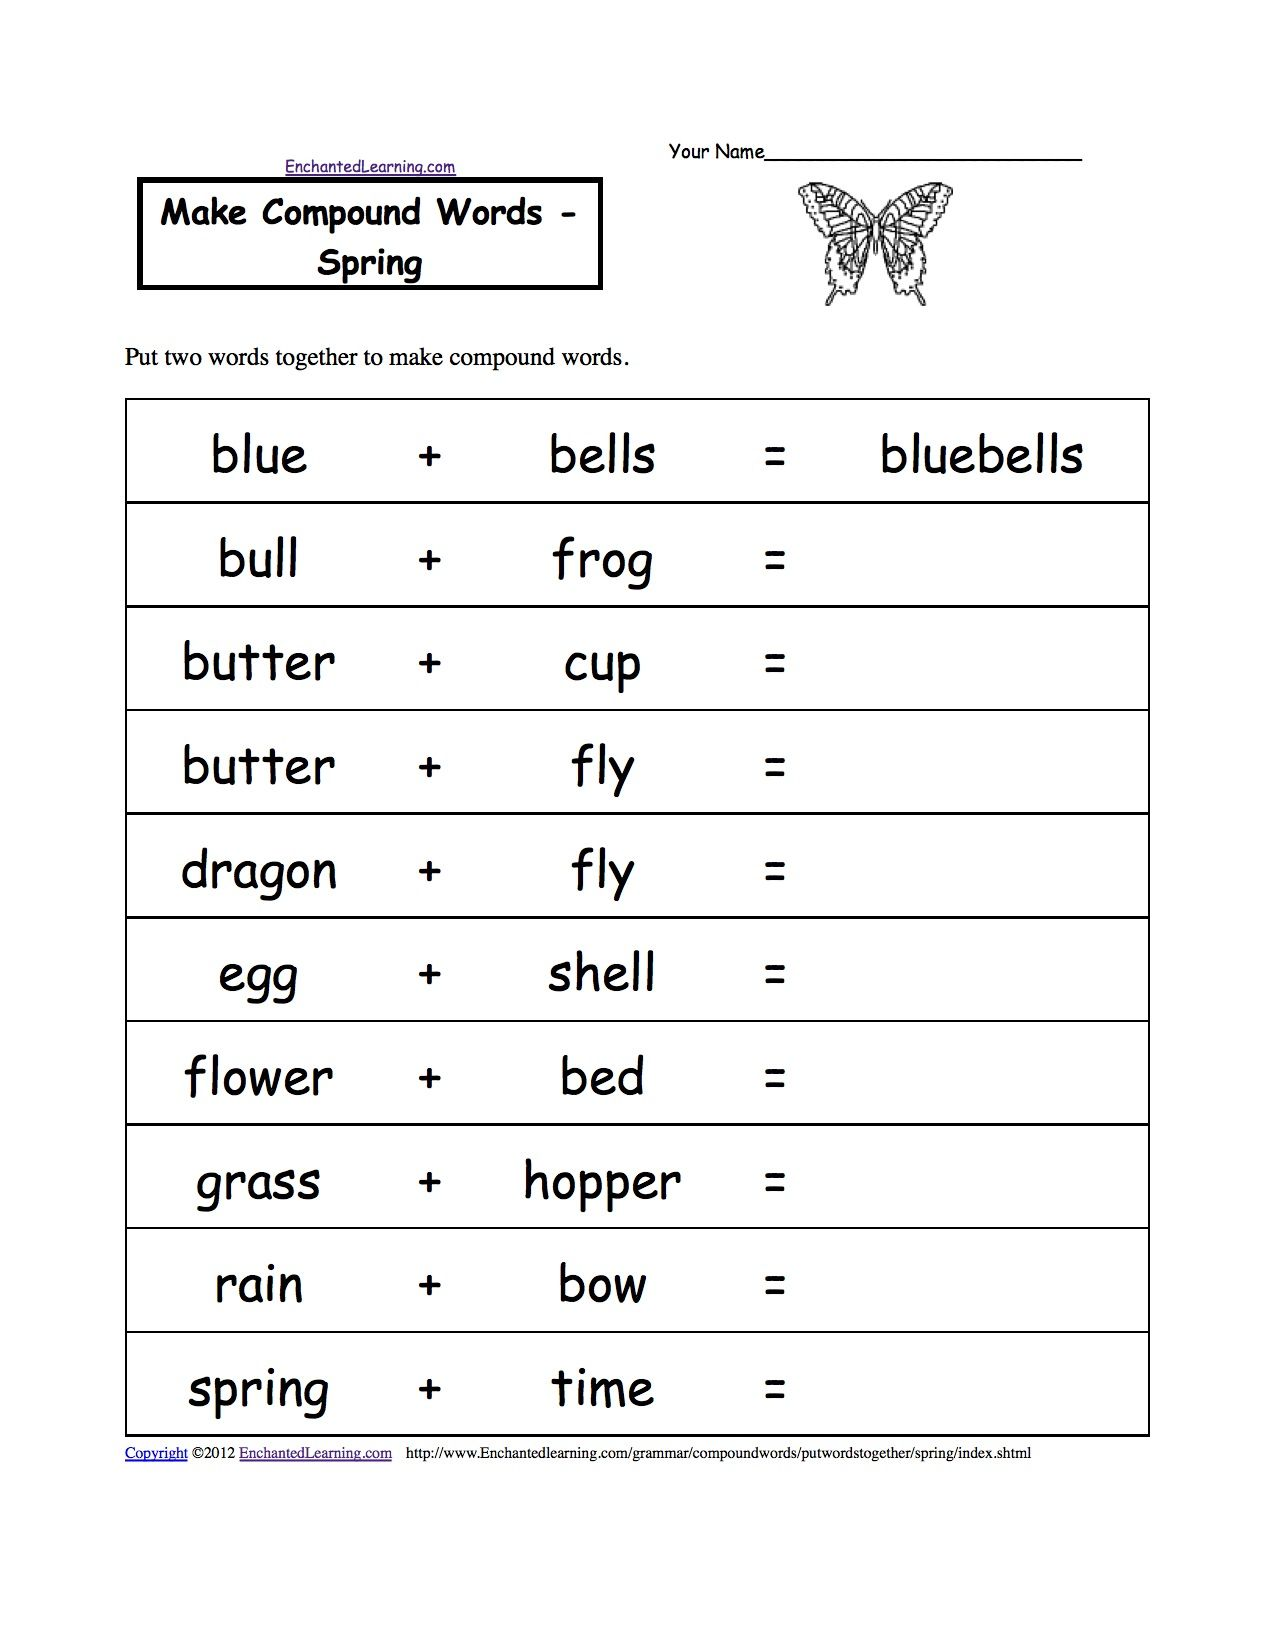 Compound words spring | Spelling worksheets, Compound words ...